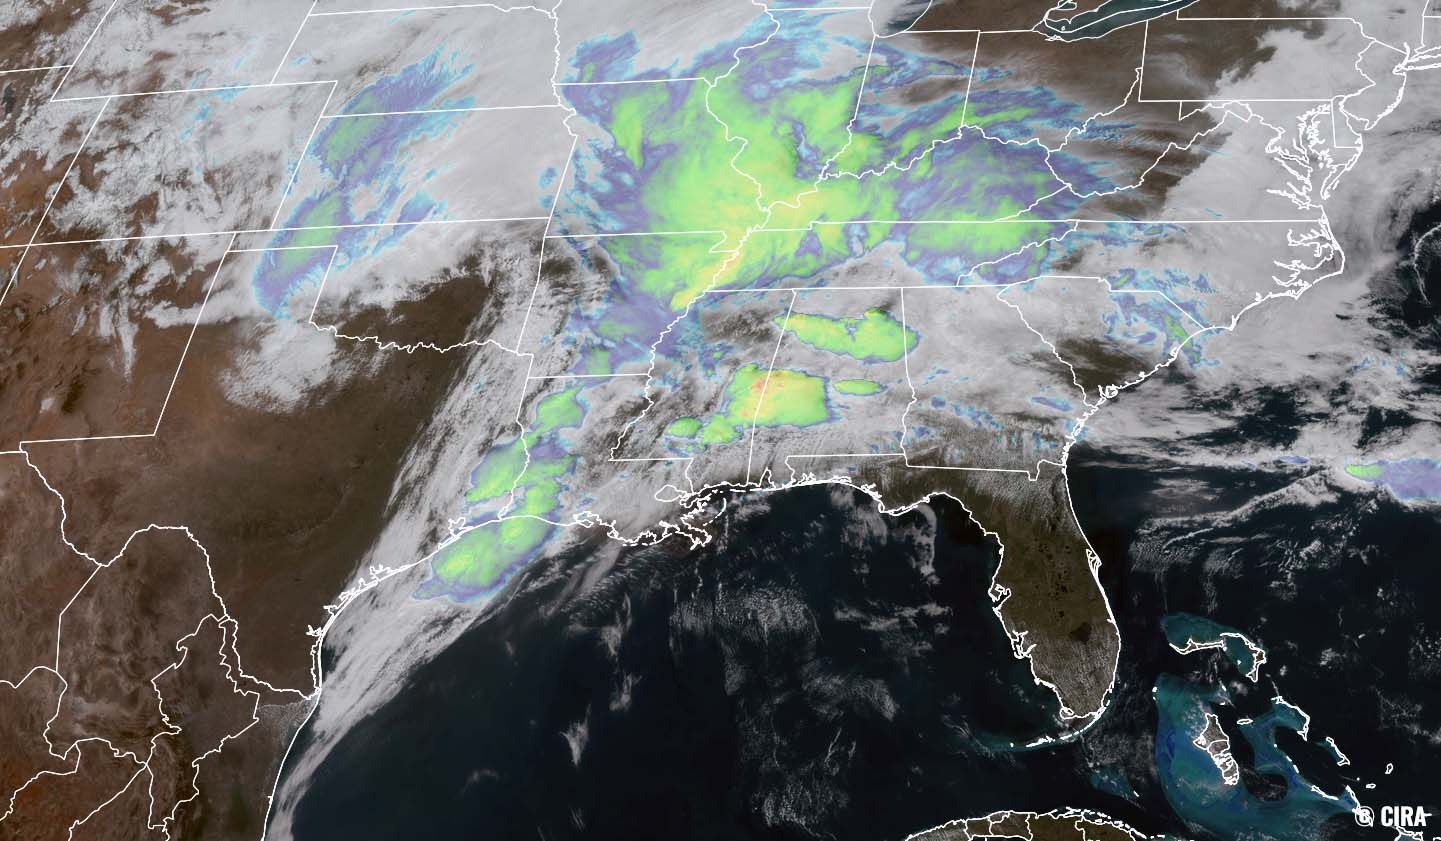 tornado-outbreak-particularly-dangerous-situation-watch-alabama-mississippi-satellite-image